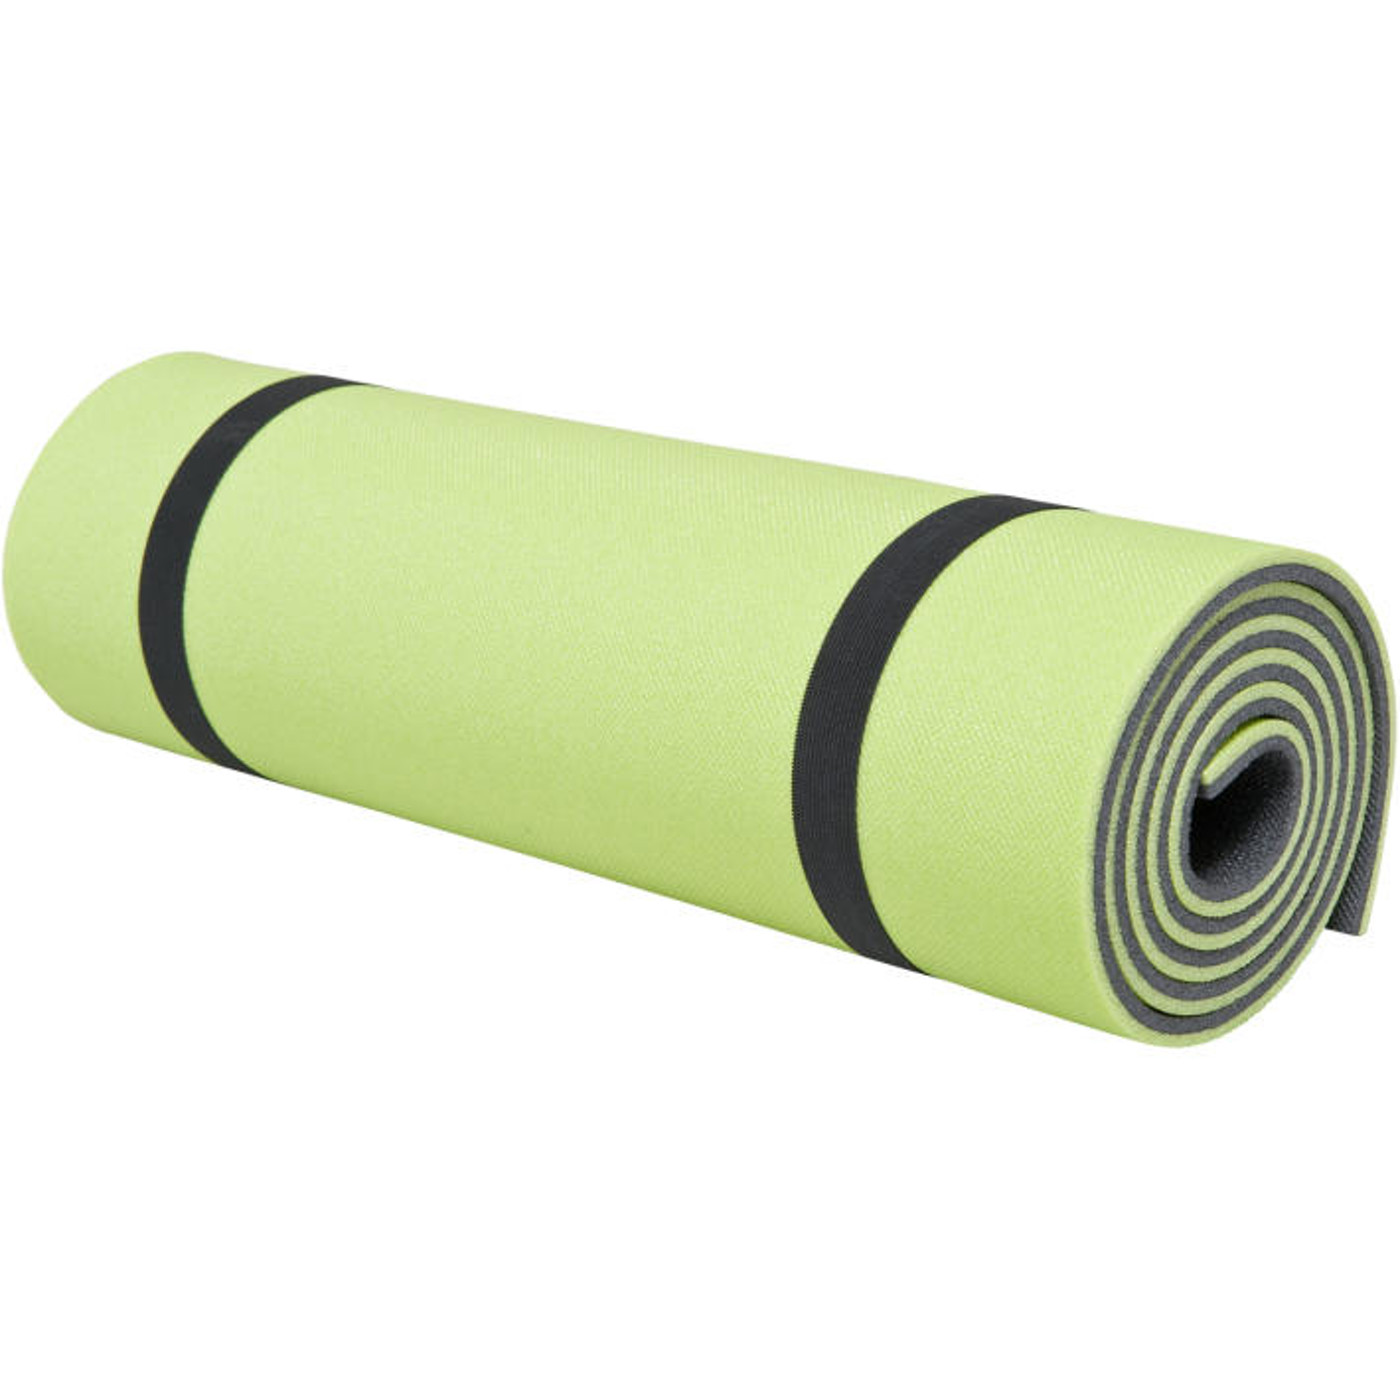 HIGH COLORADO PE MAT TWO LAYER